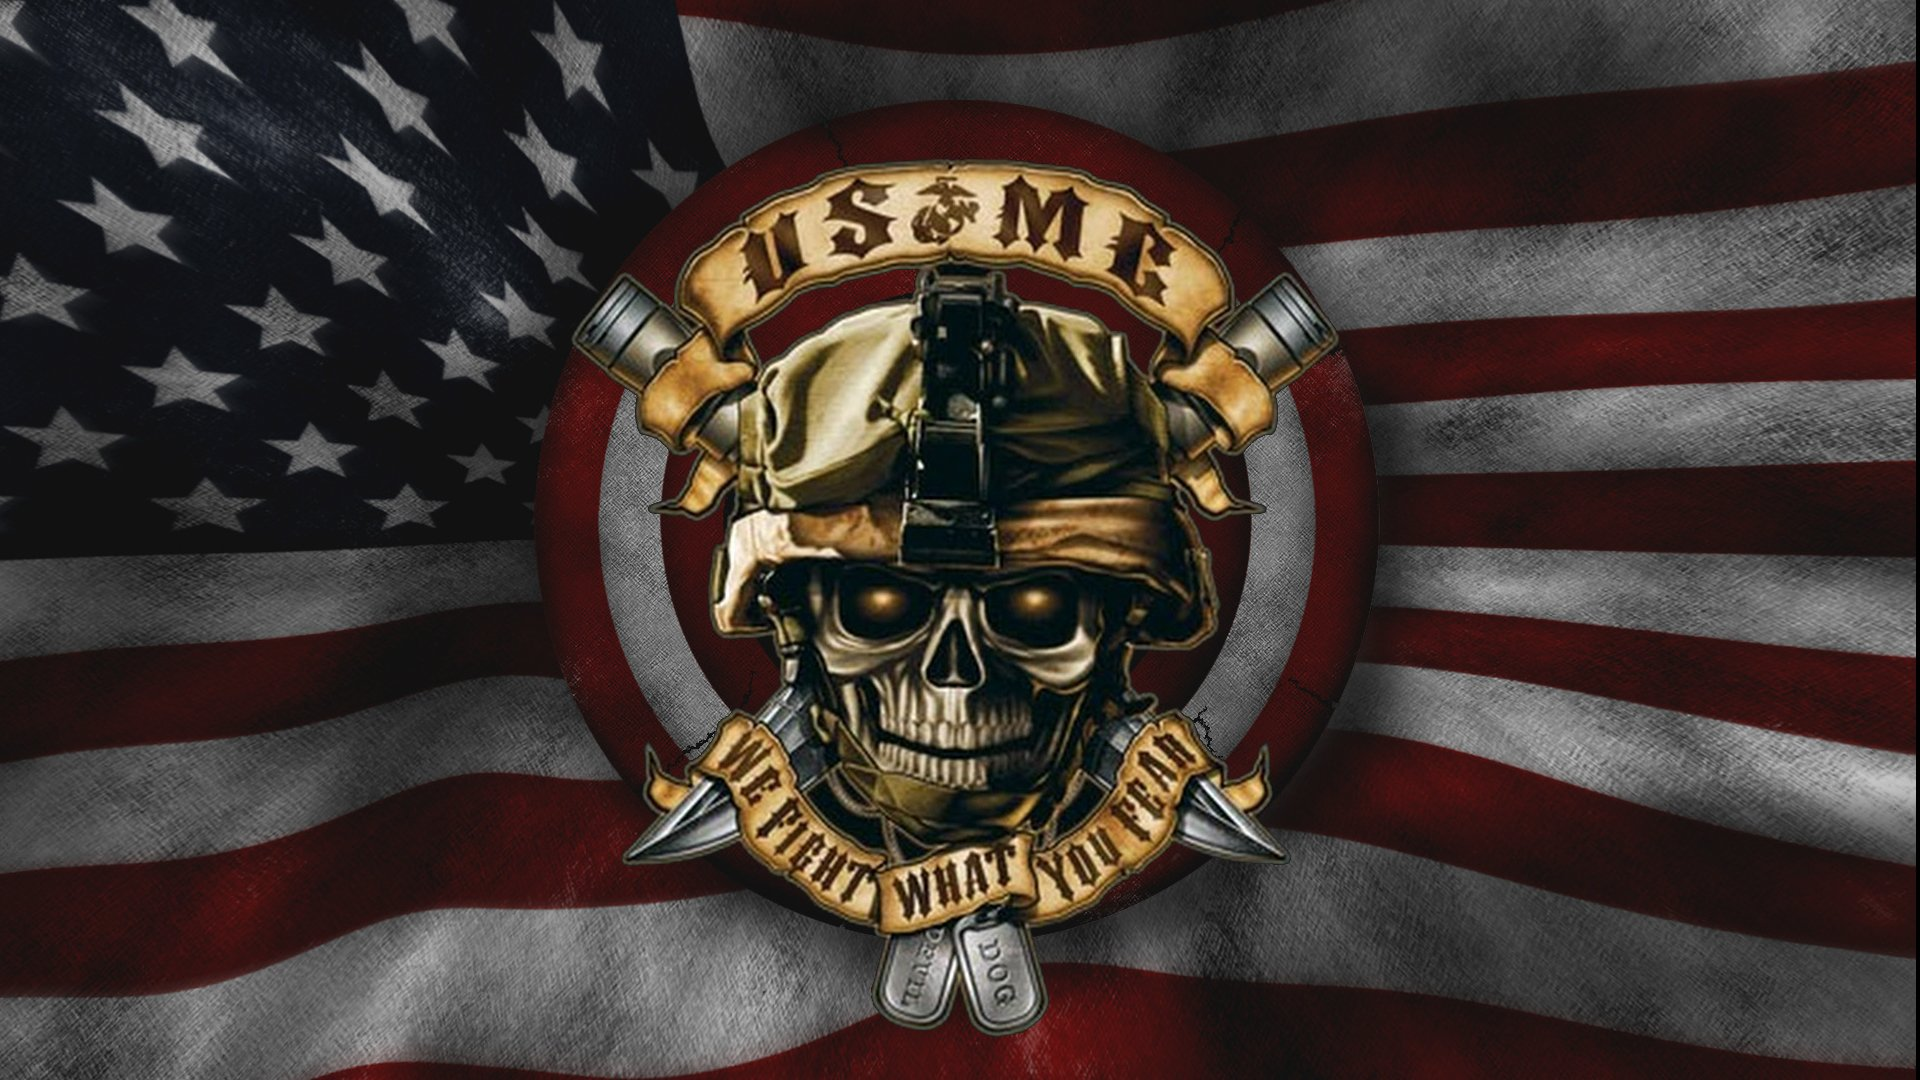 76 Marines Hd Wallpapers Background Images Wallpaper Abyss